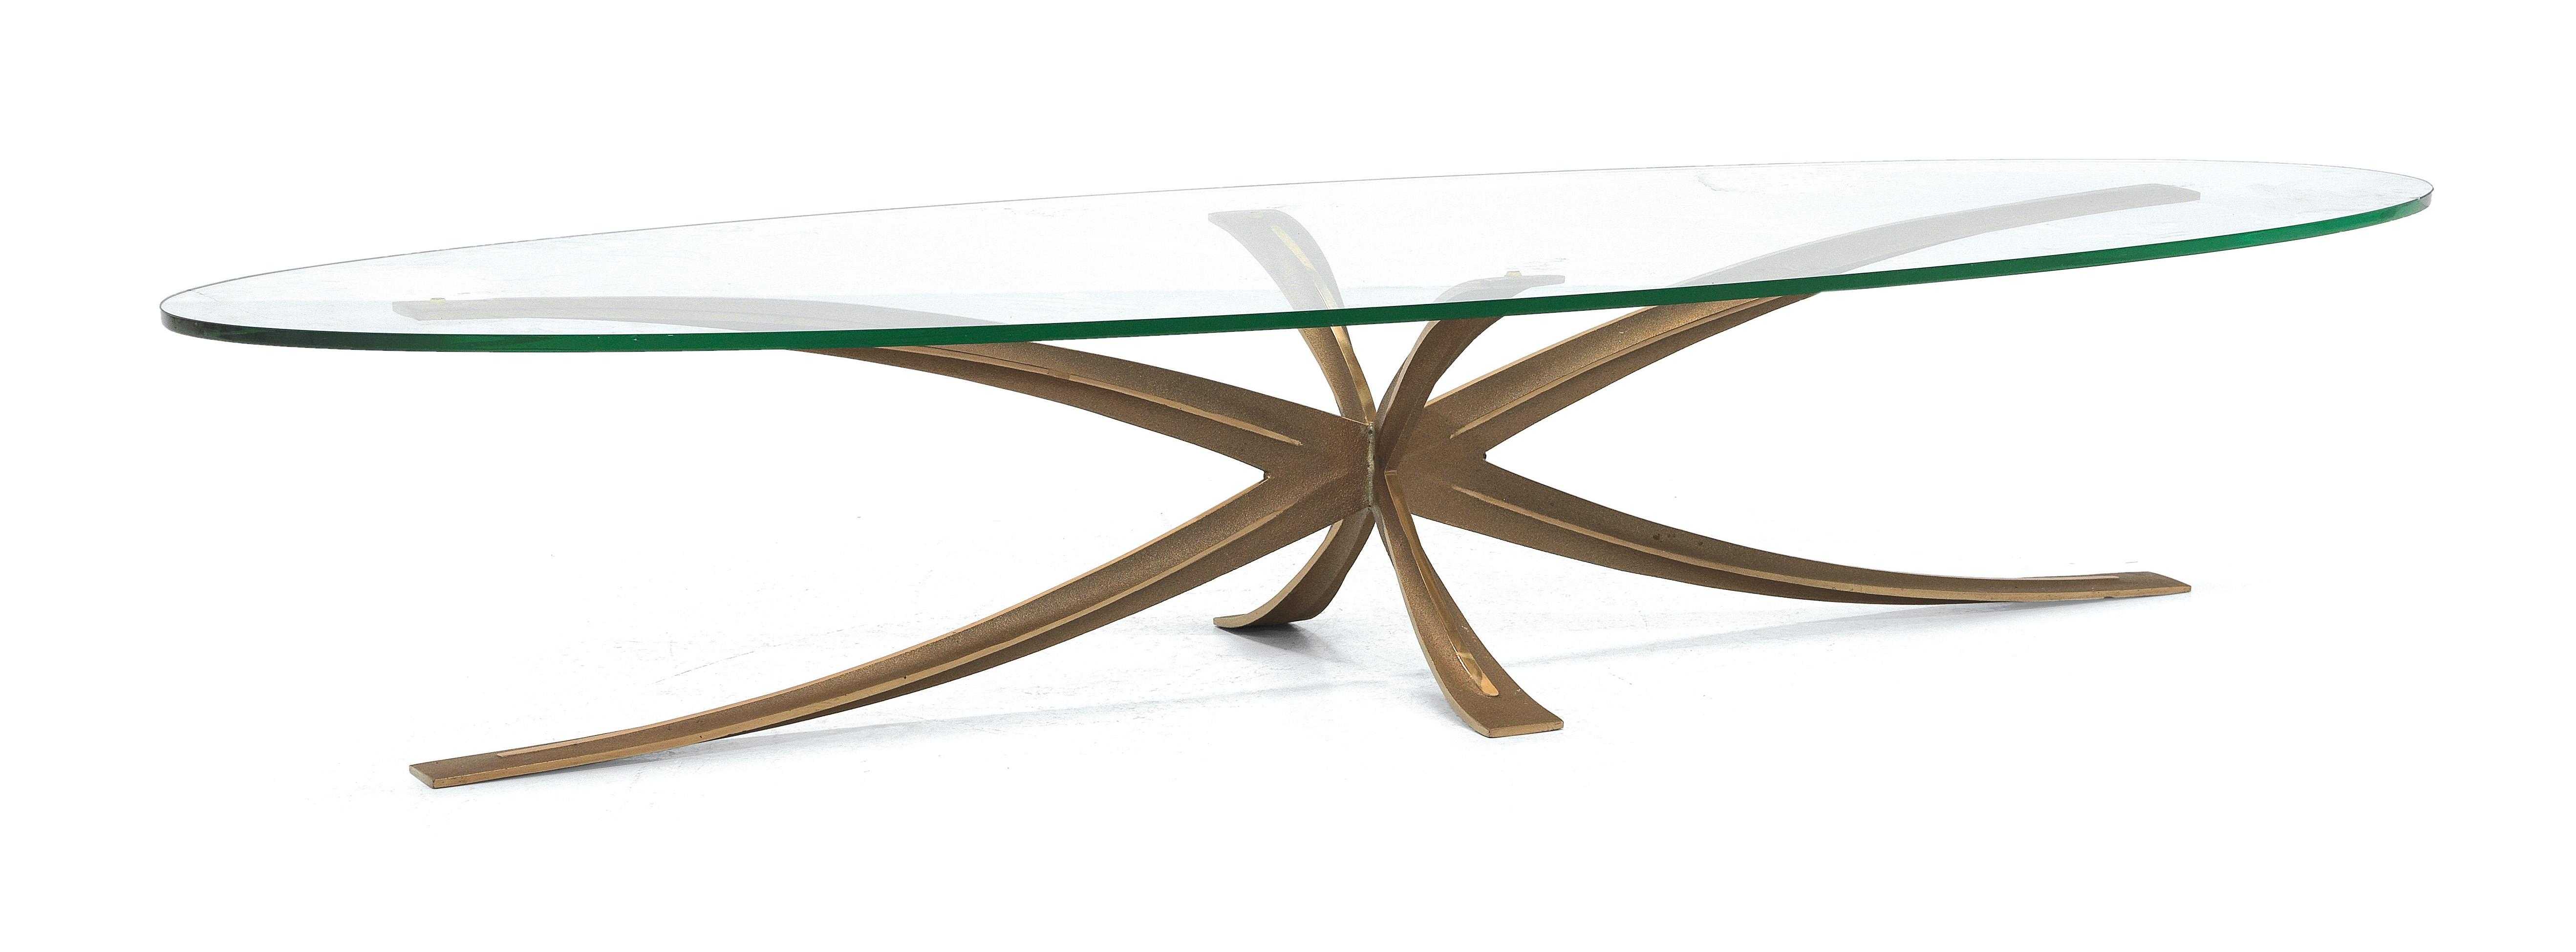 A Rare Large Coffee Table Michel Mangematin Selected By Hohenlohe 2018 03 14 Realized Price Eur 8 750 Dorotheum